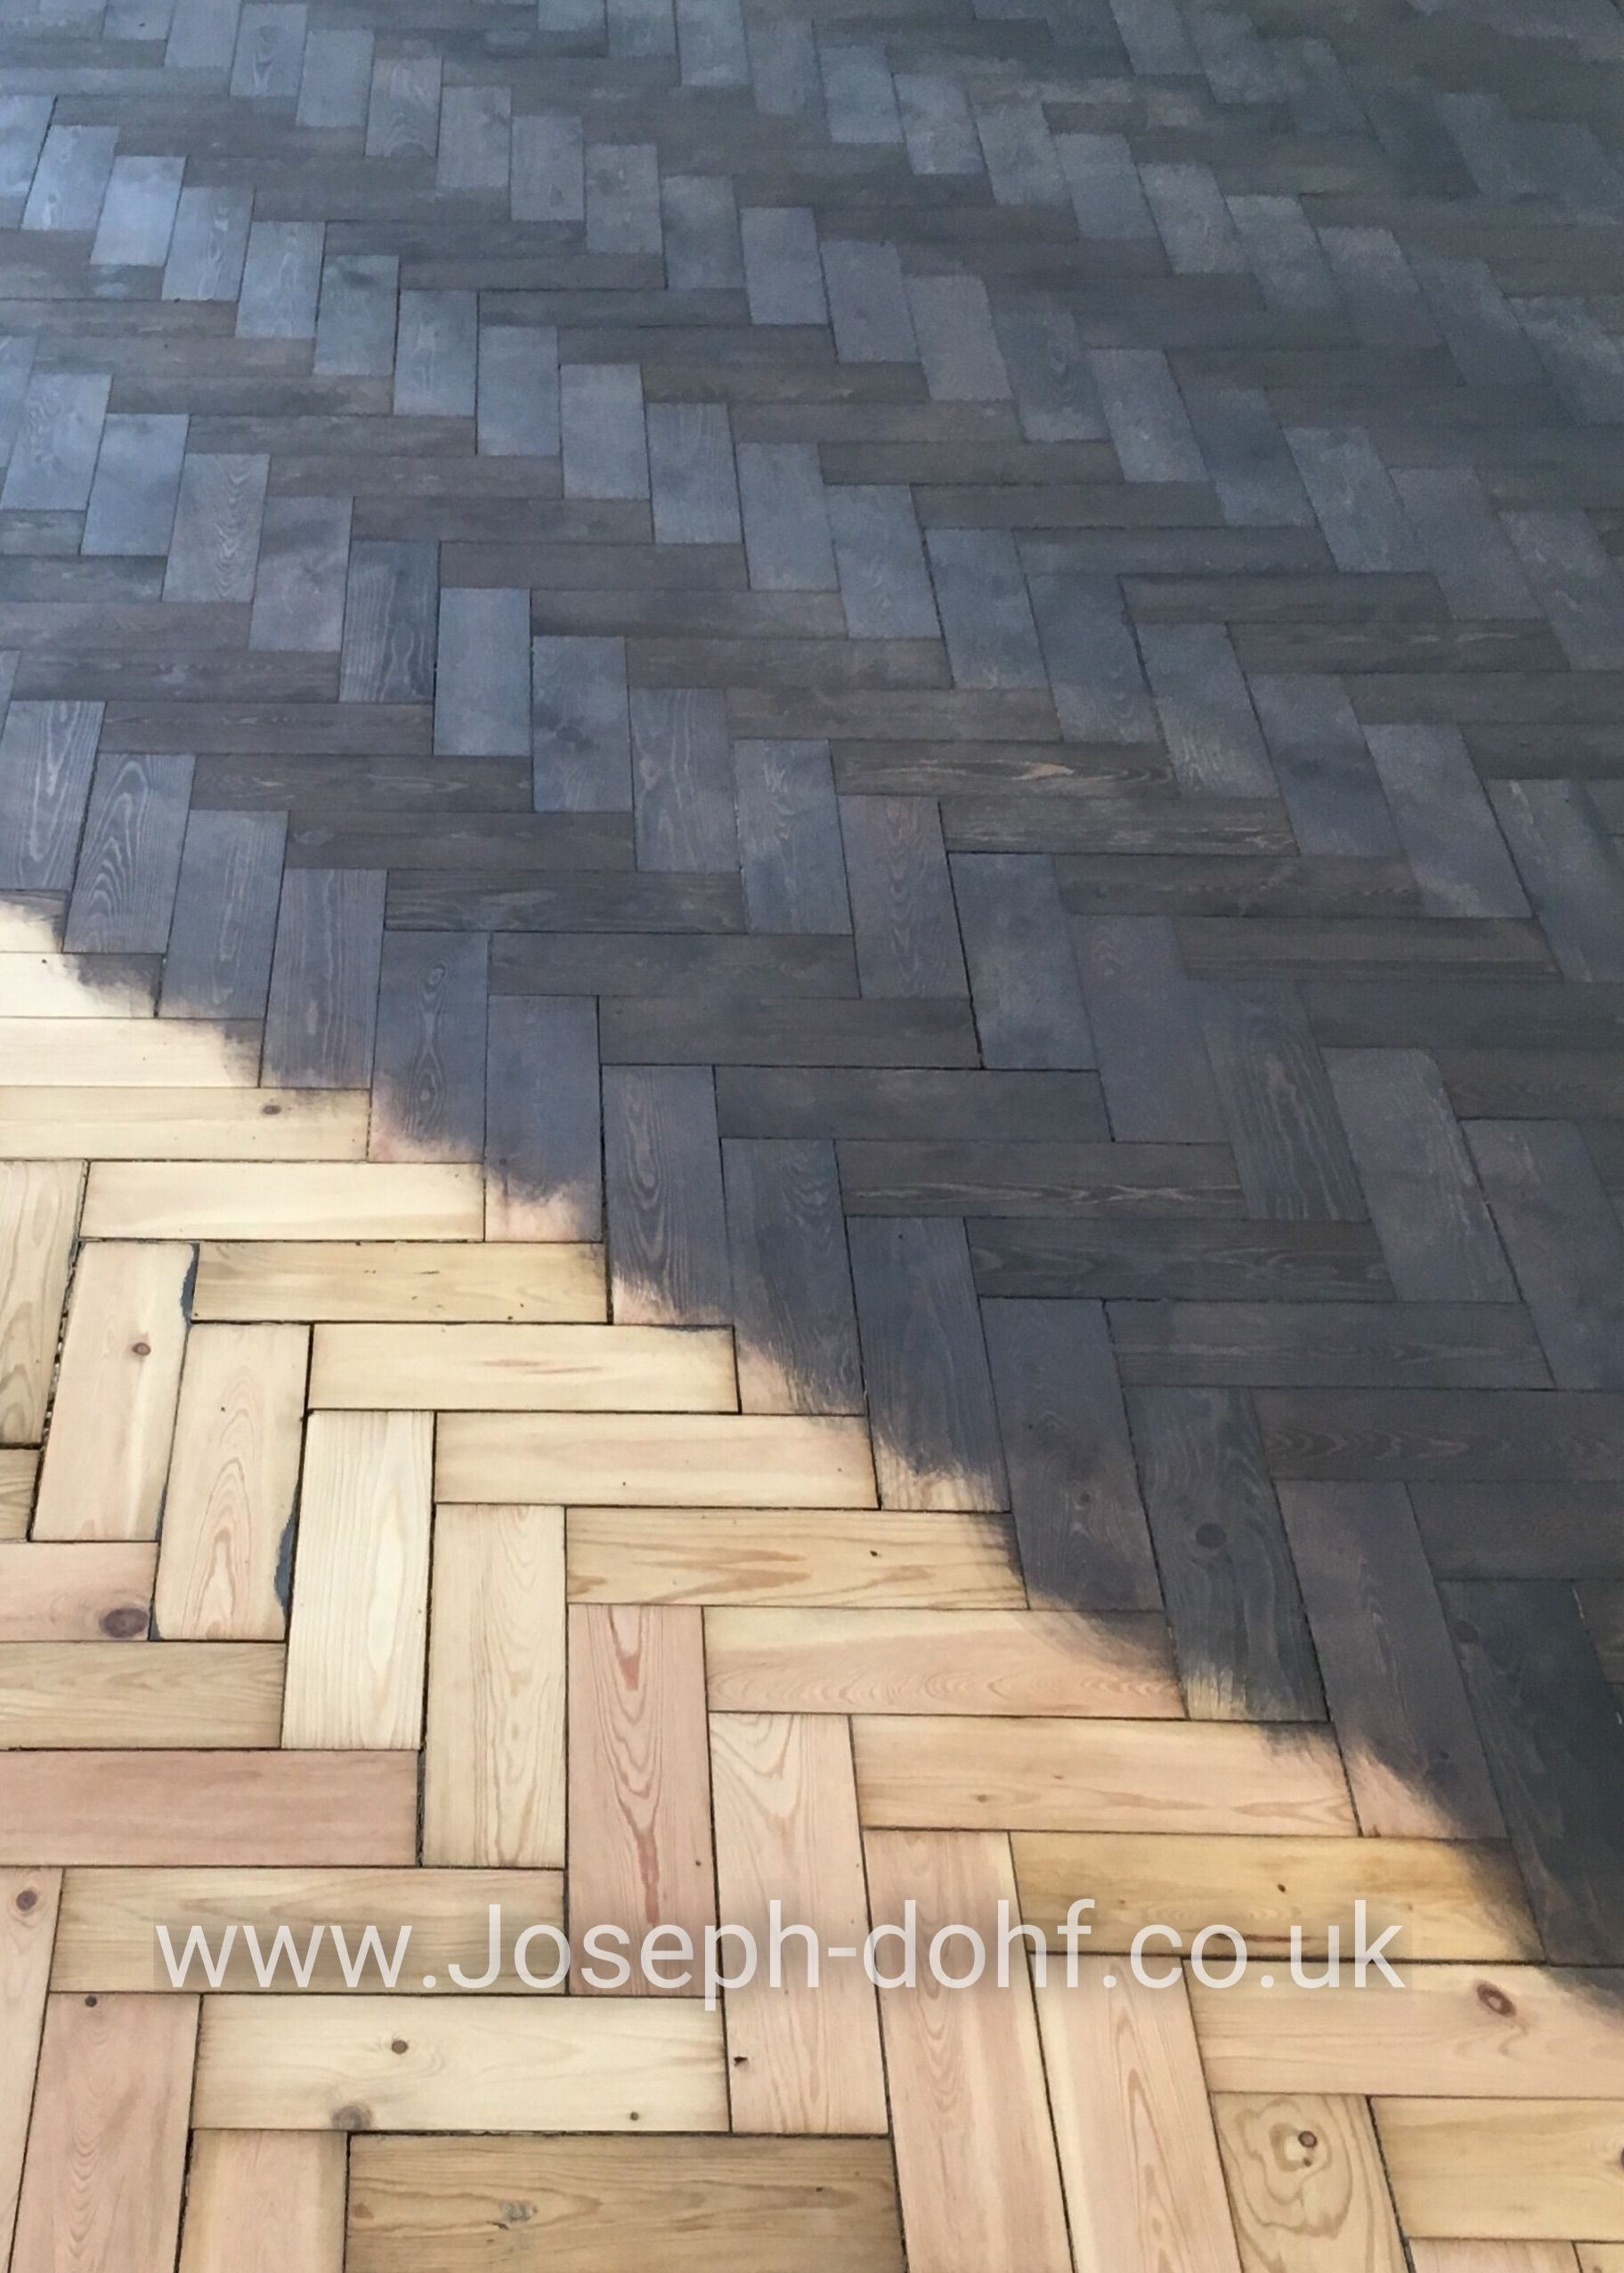 Reclaimed parquet pine floor, sanded and stained with one coat of grey colour look.